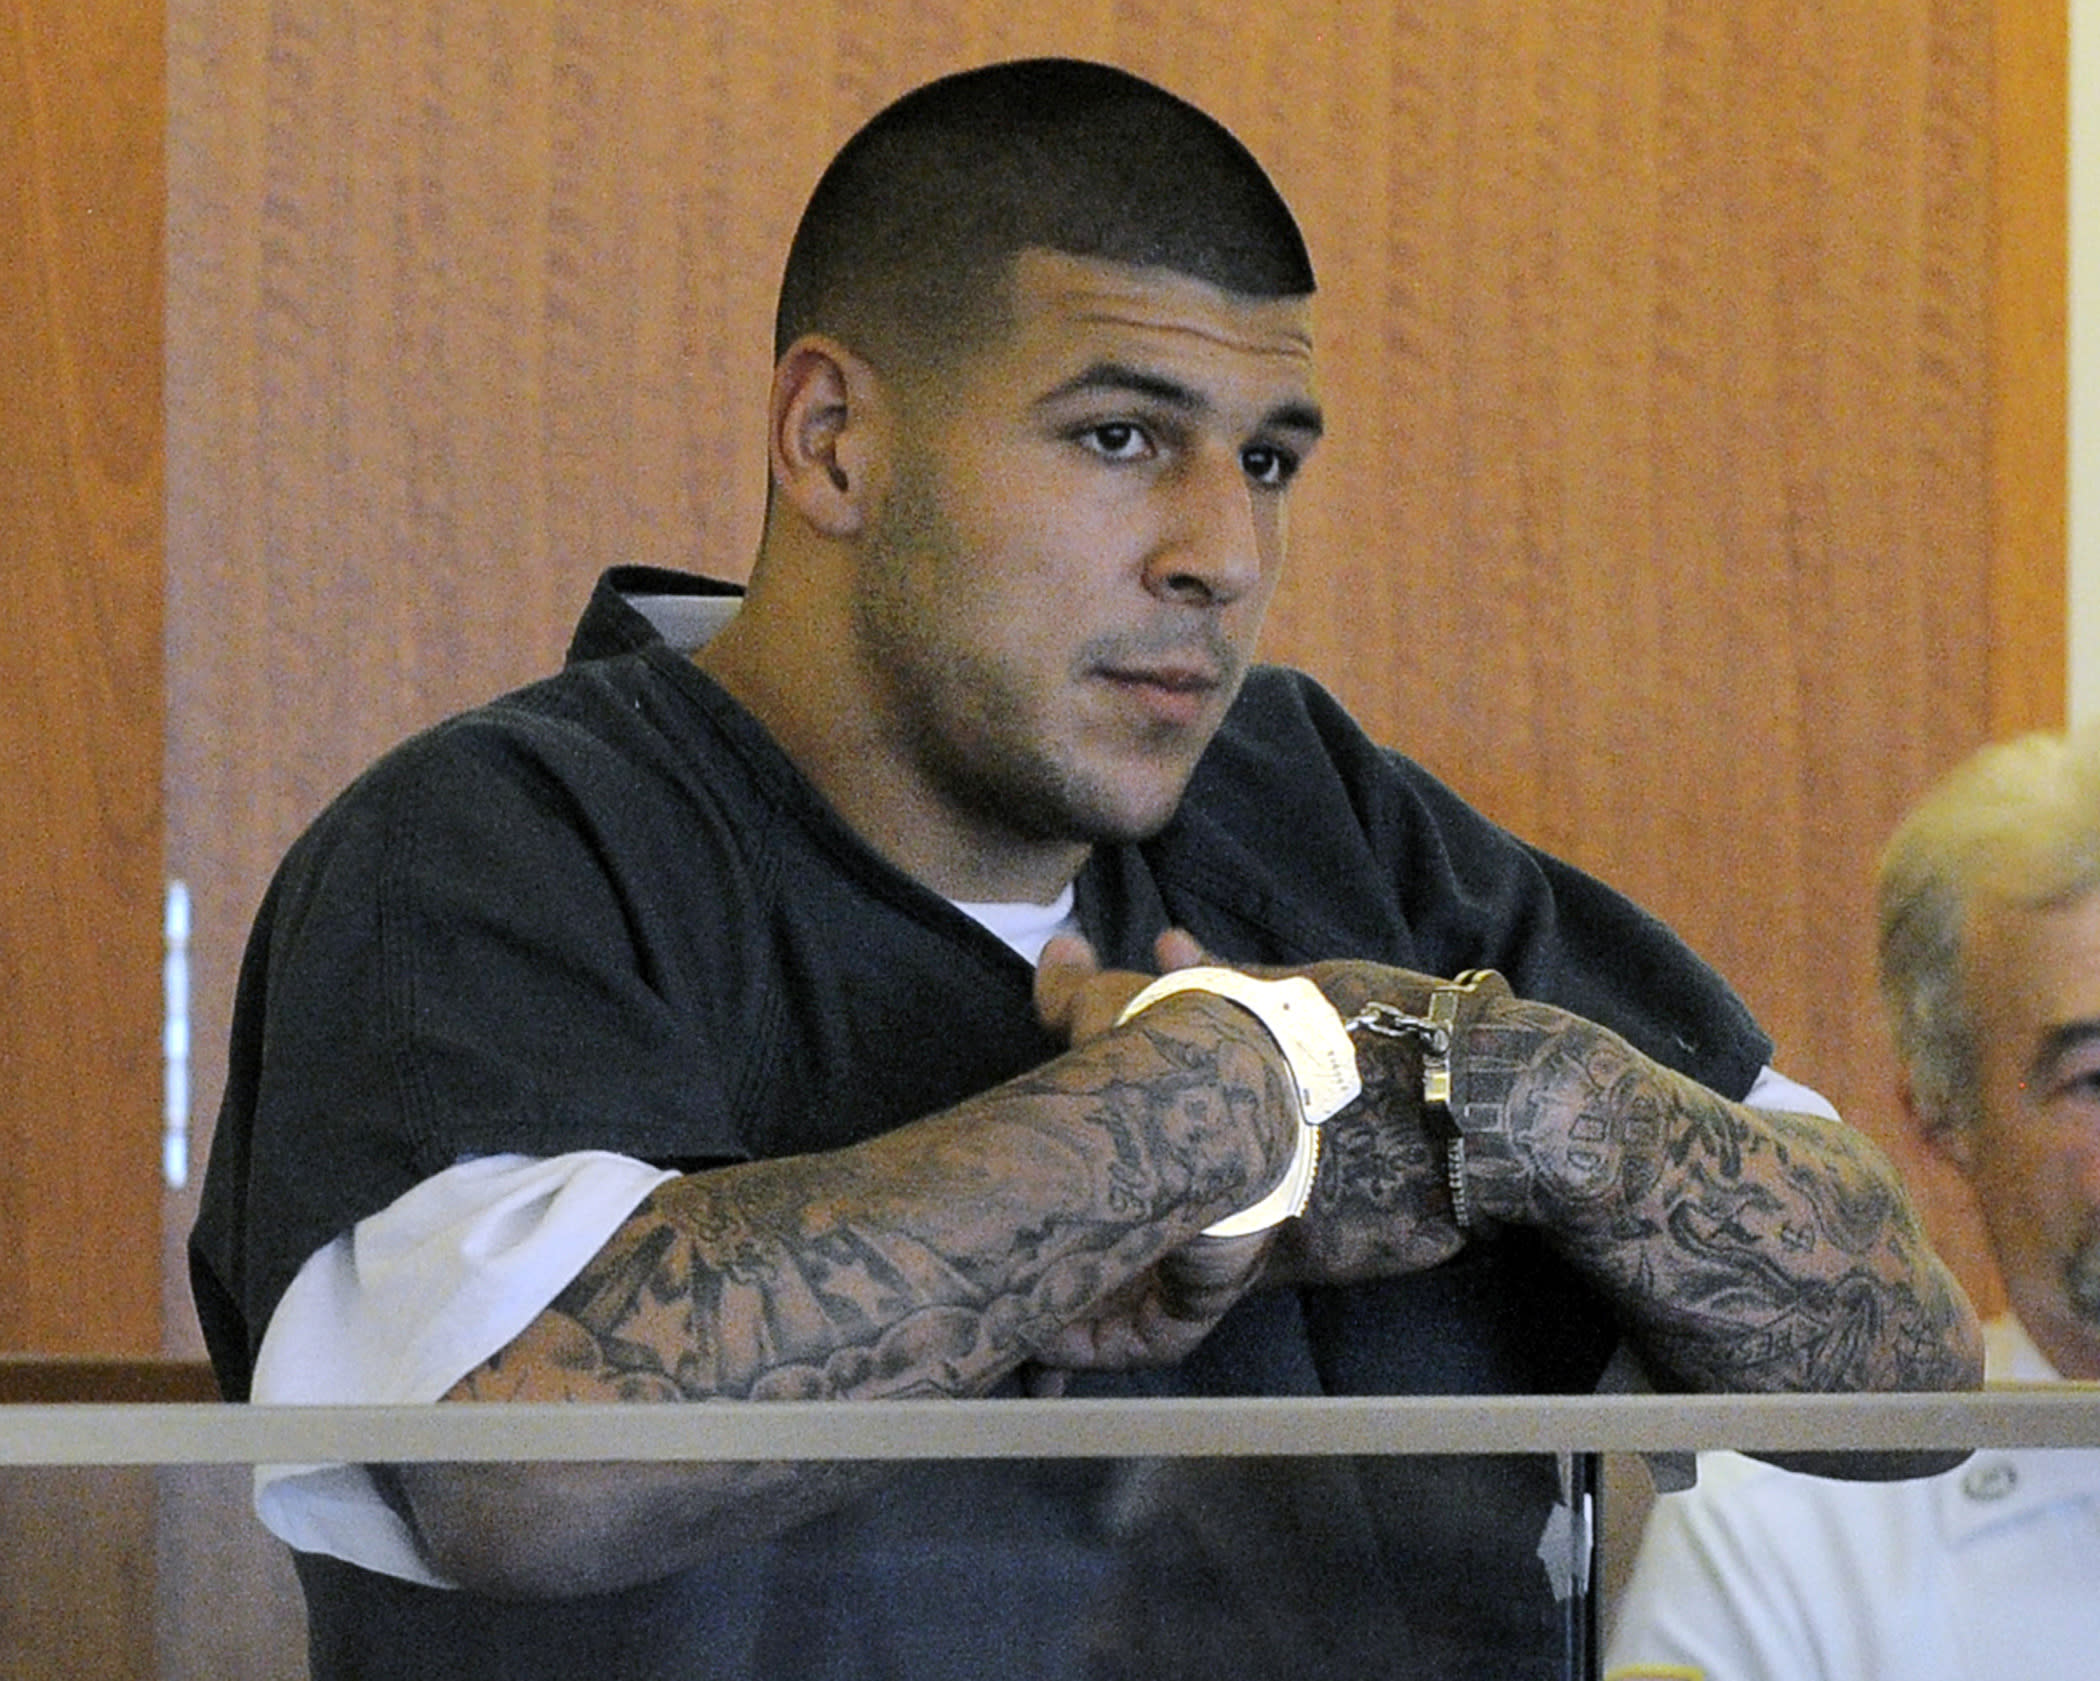 Aaron hernandez was cut by the new england patriots after he was - Aaron Hernandez Was Cut By The New England Patriots After He Was